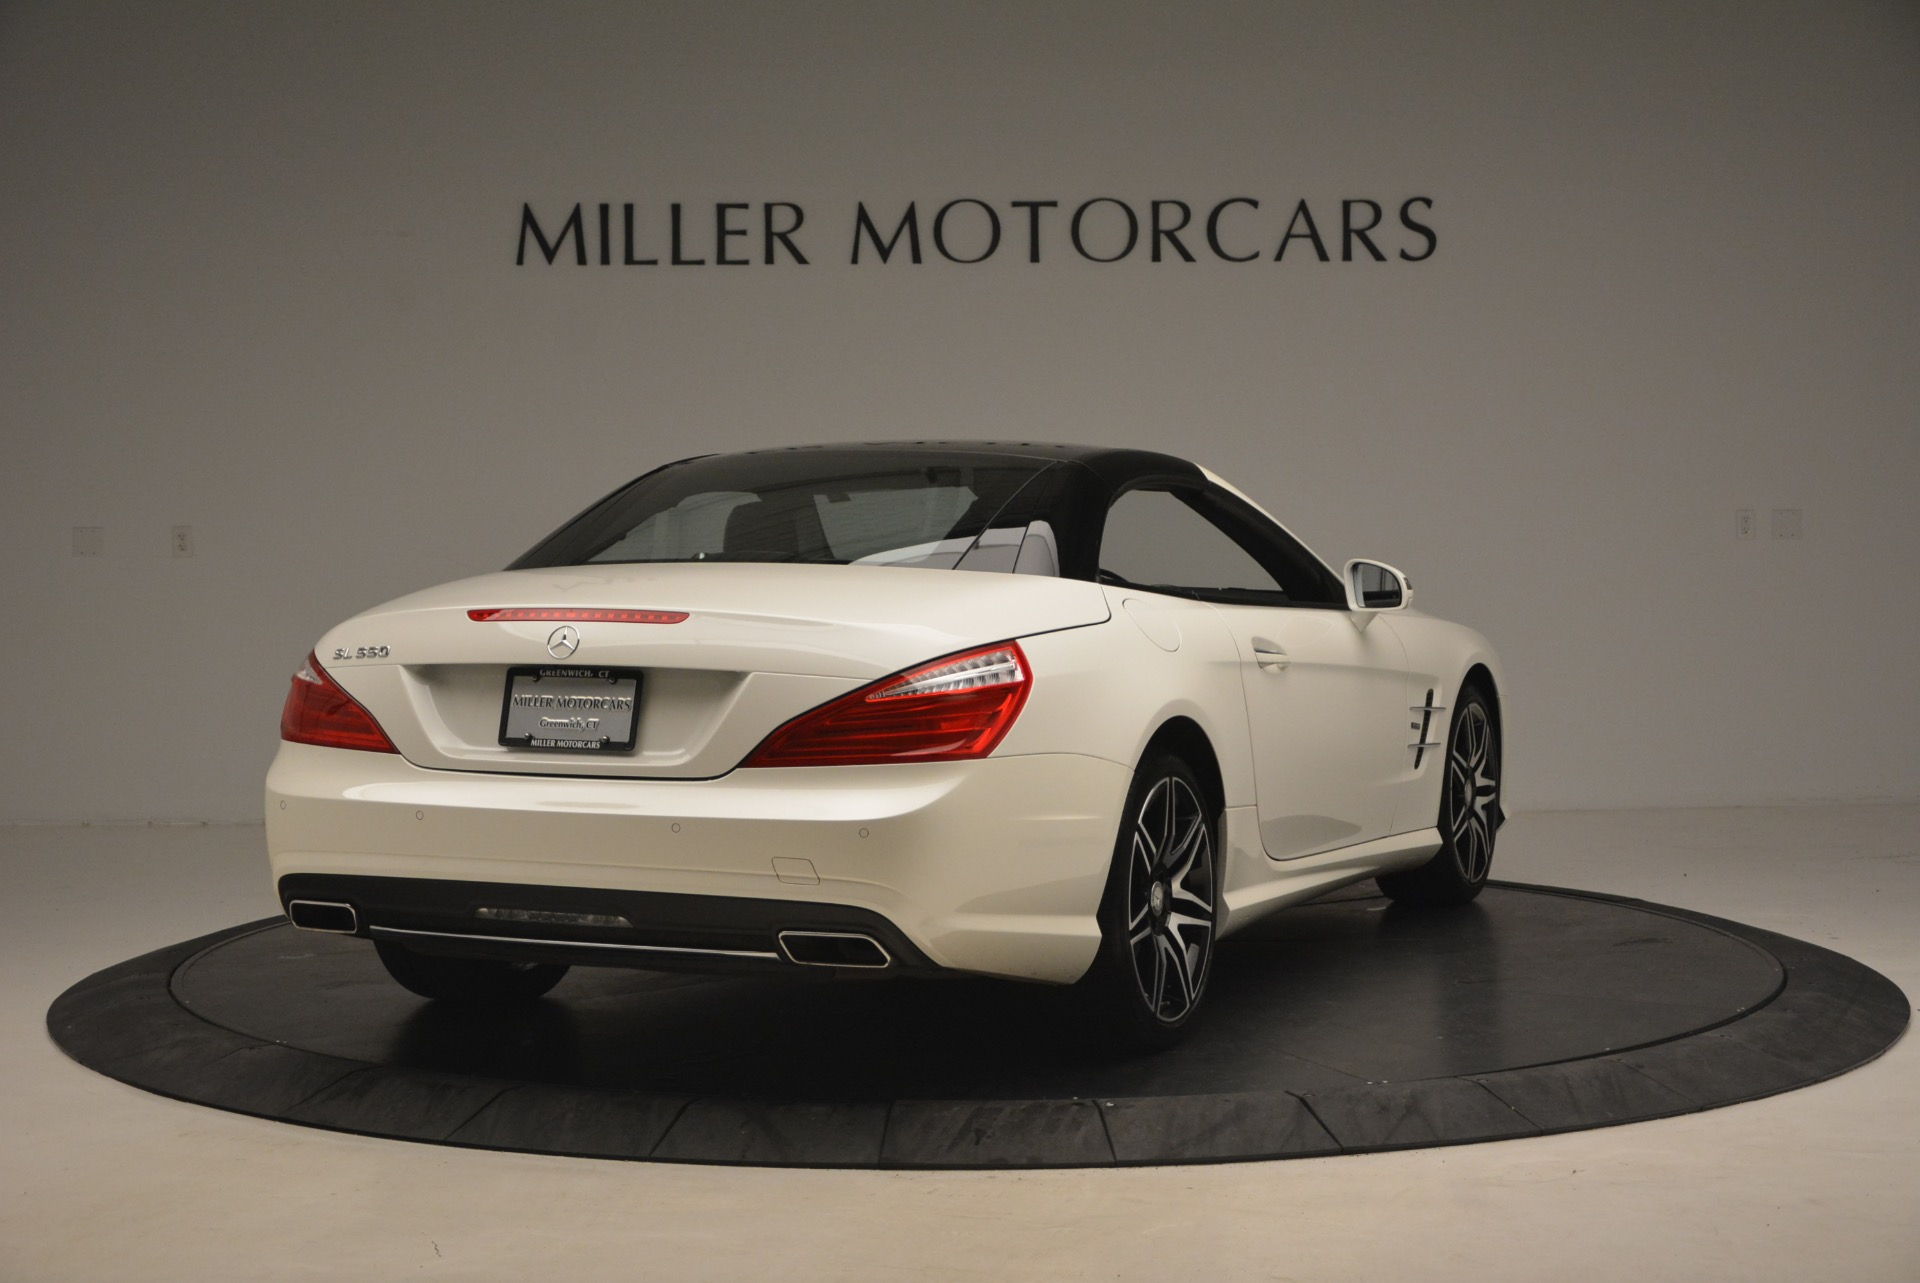 Used 2015 Mercedes Benz SL-Class SL 550 For Sale In Greenwich, CT 1261_p21